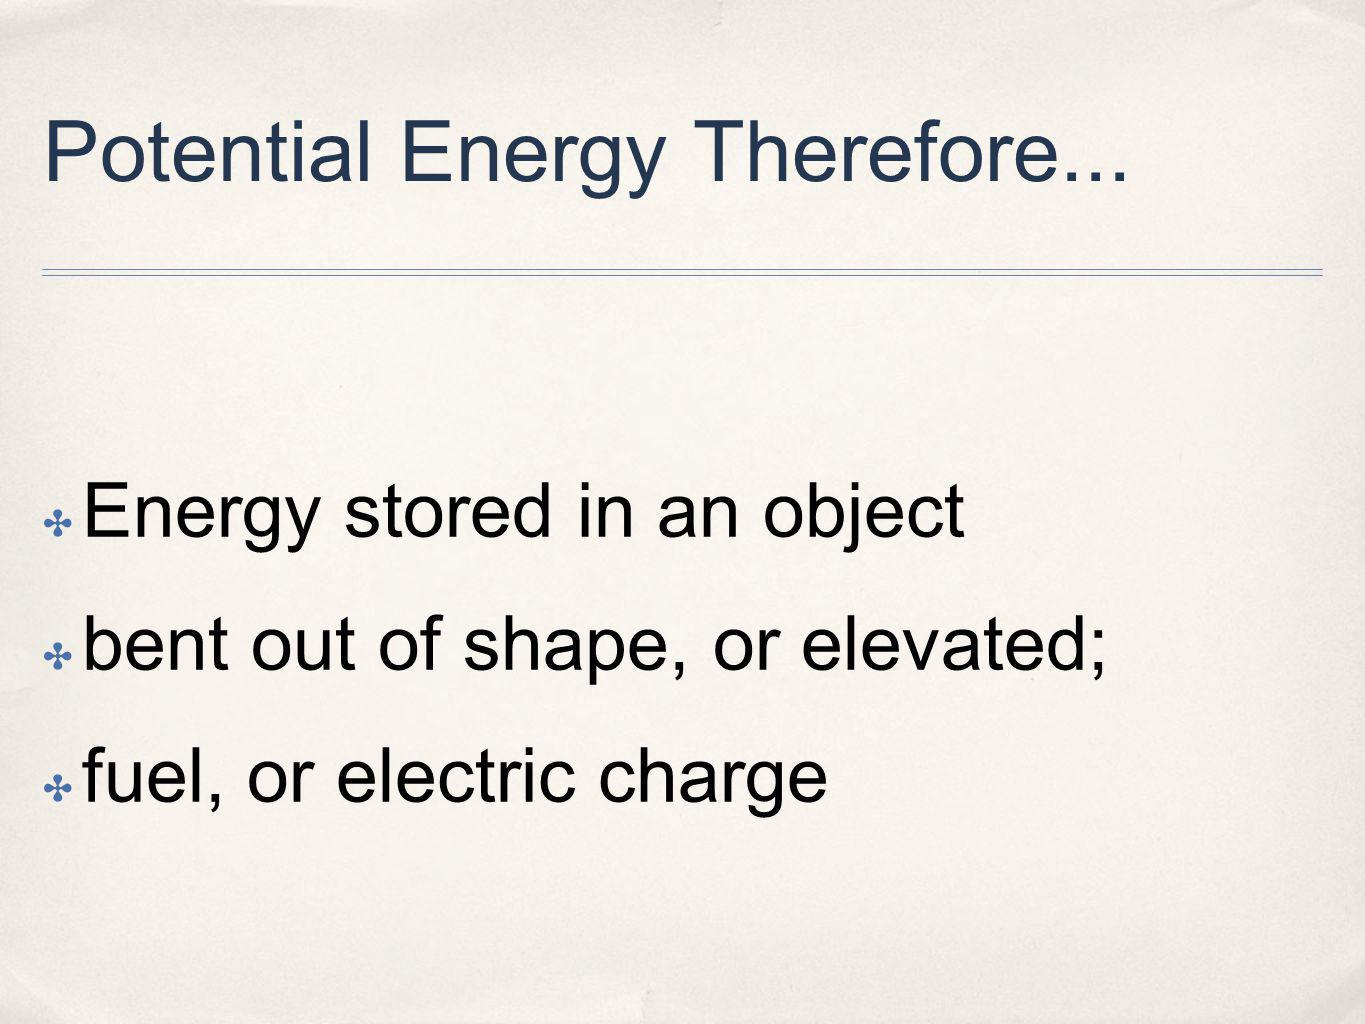 Potential Energy Therefore...